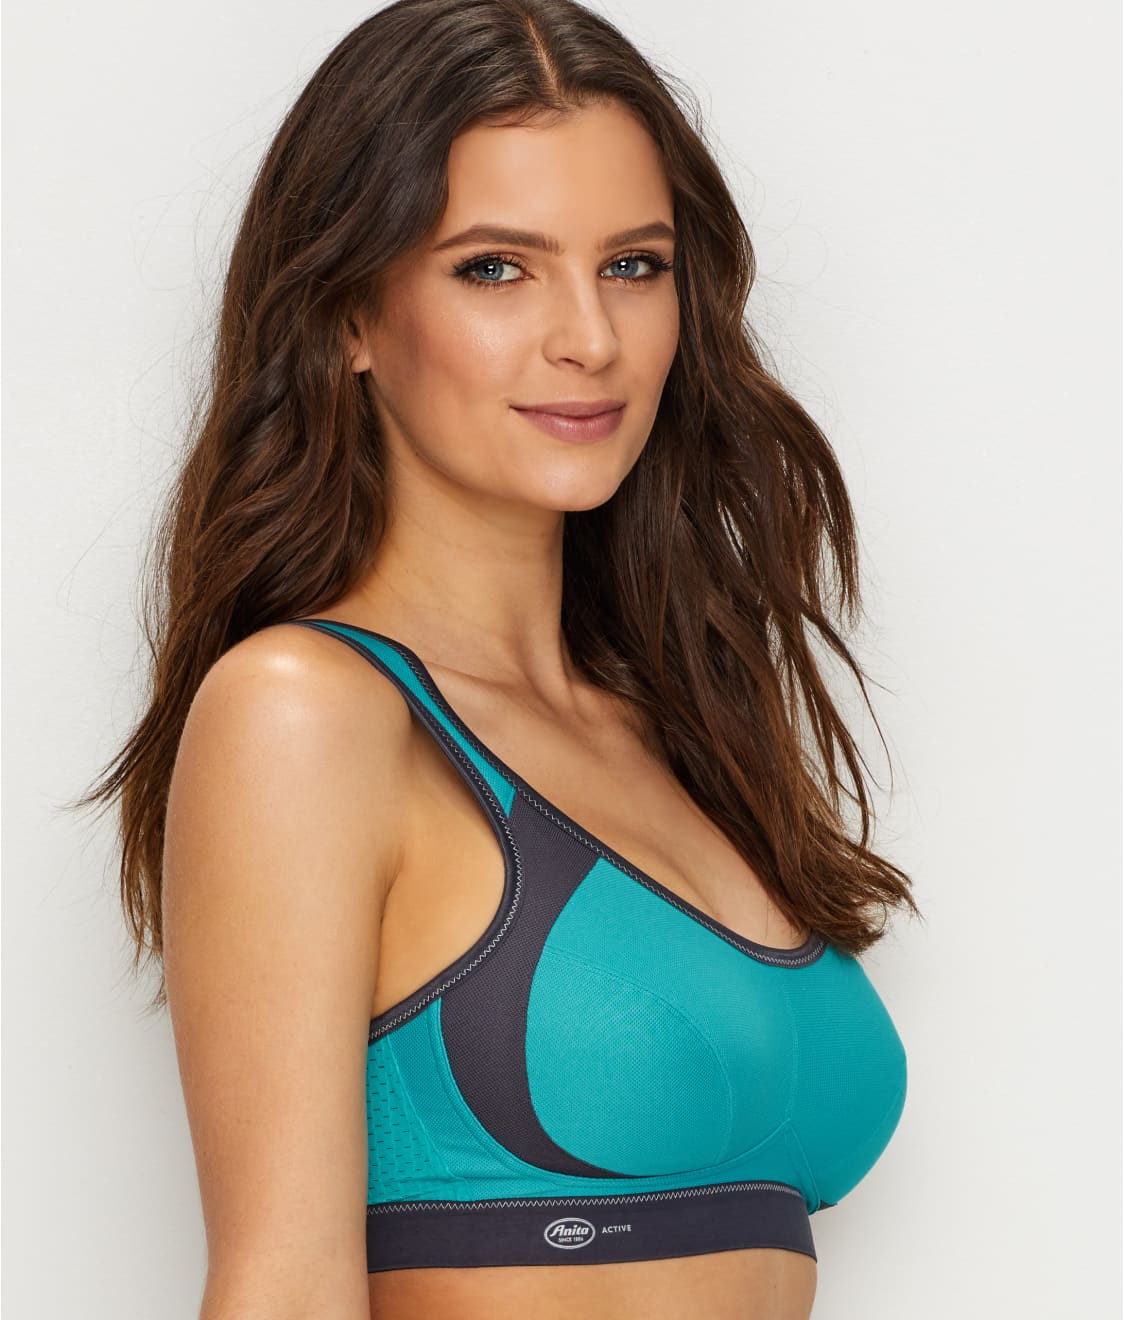 b806dbc284 See High Impact Wire-Free Sports Bra in Peacock   Anthracite